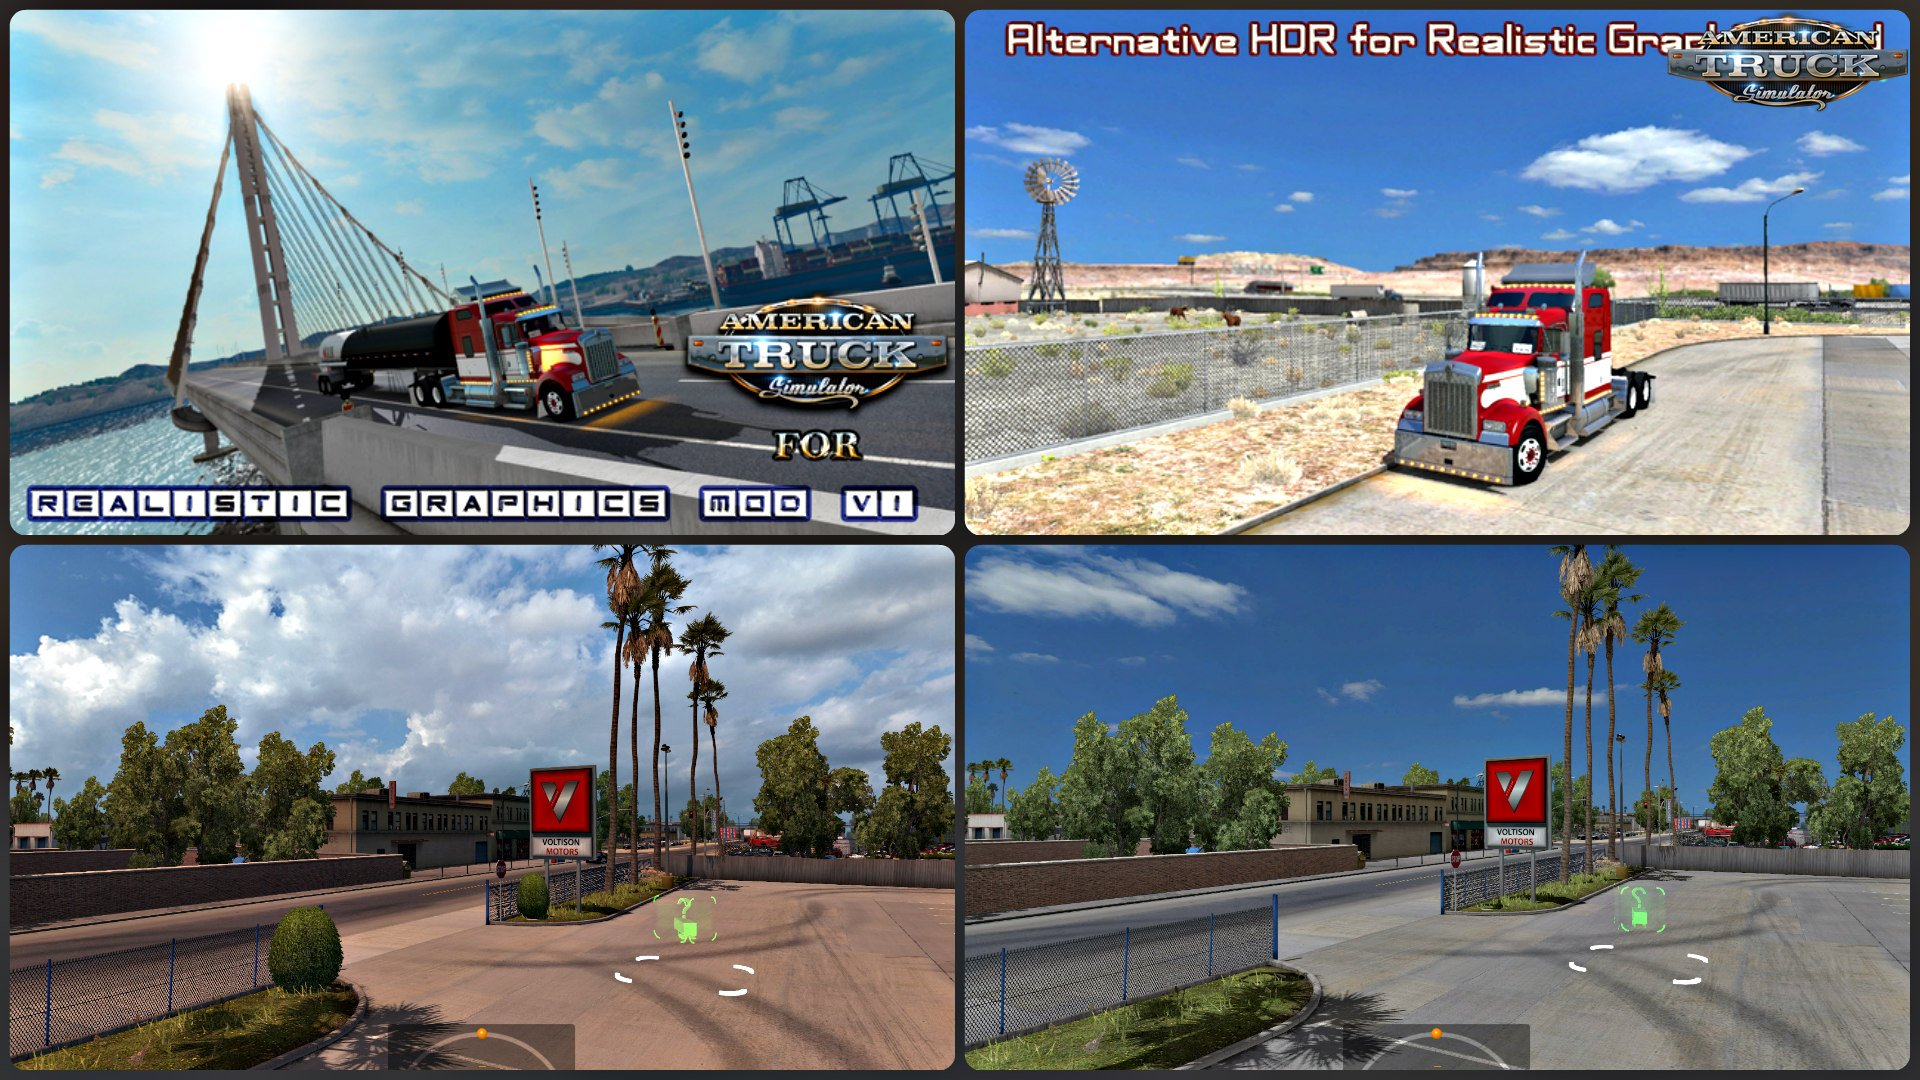 Realistic Graphics Mod v1.4 + Alternative HDR for Realistics Graphics Mod (v1.4.x)